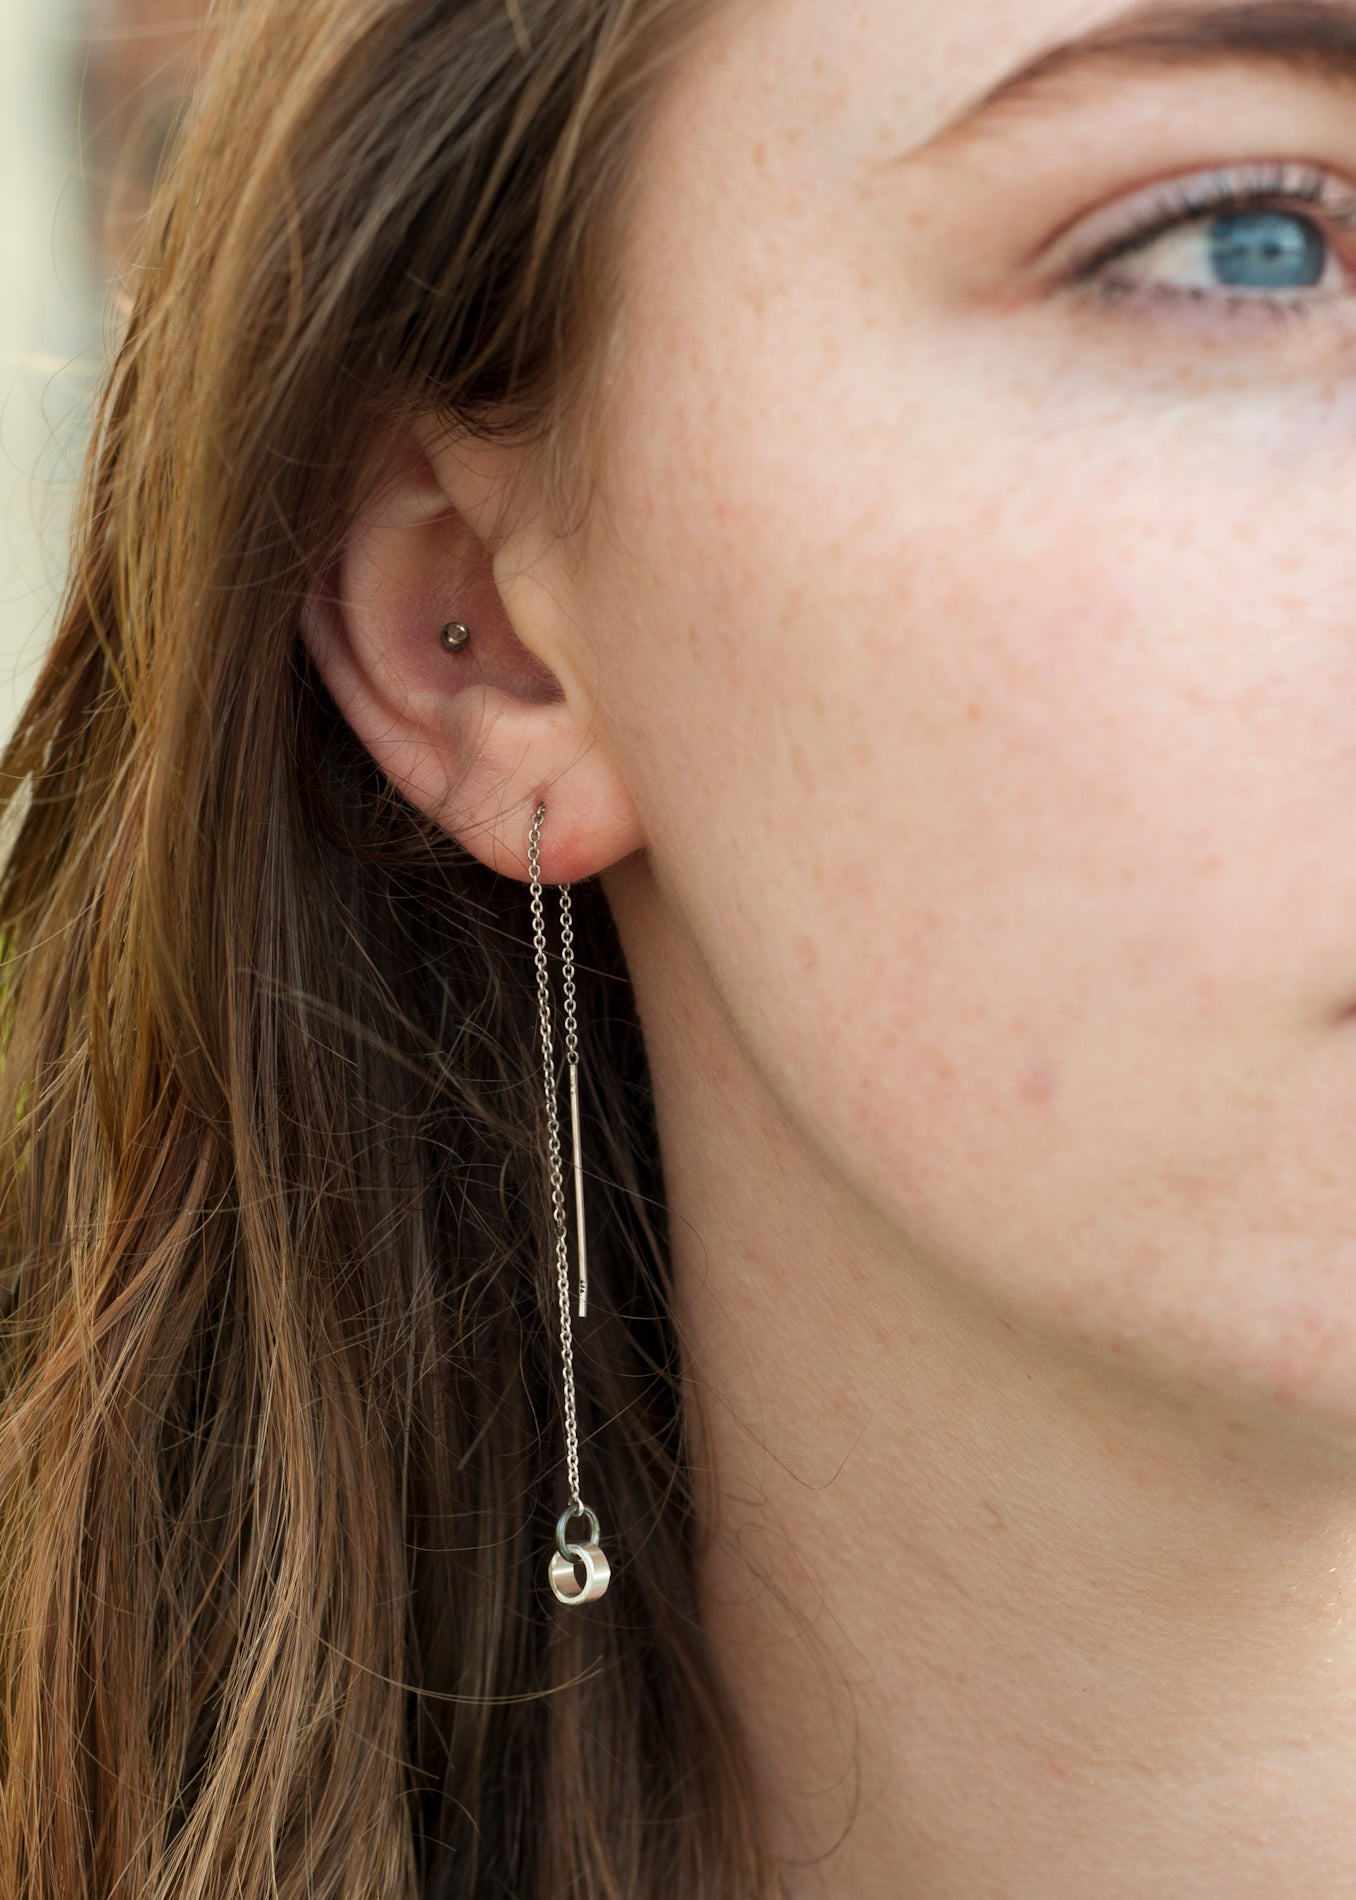 A sterling silver chain threader earring with a 6mm silver circle  attached.